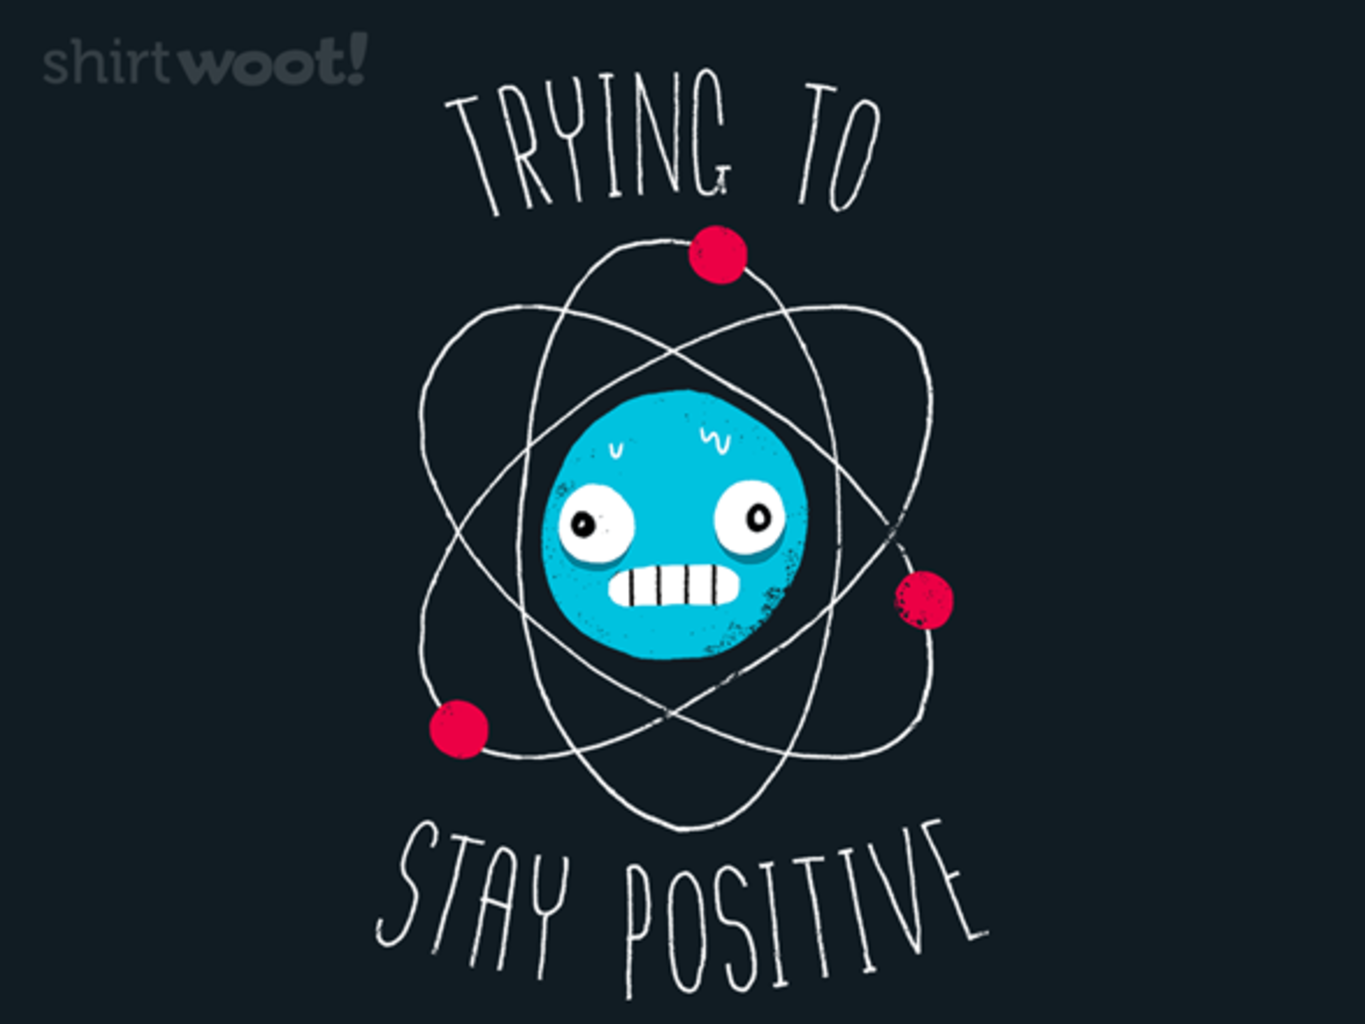 Woot!: Trying to Stay Positive